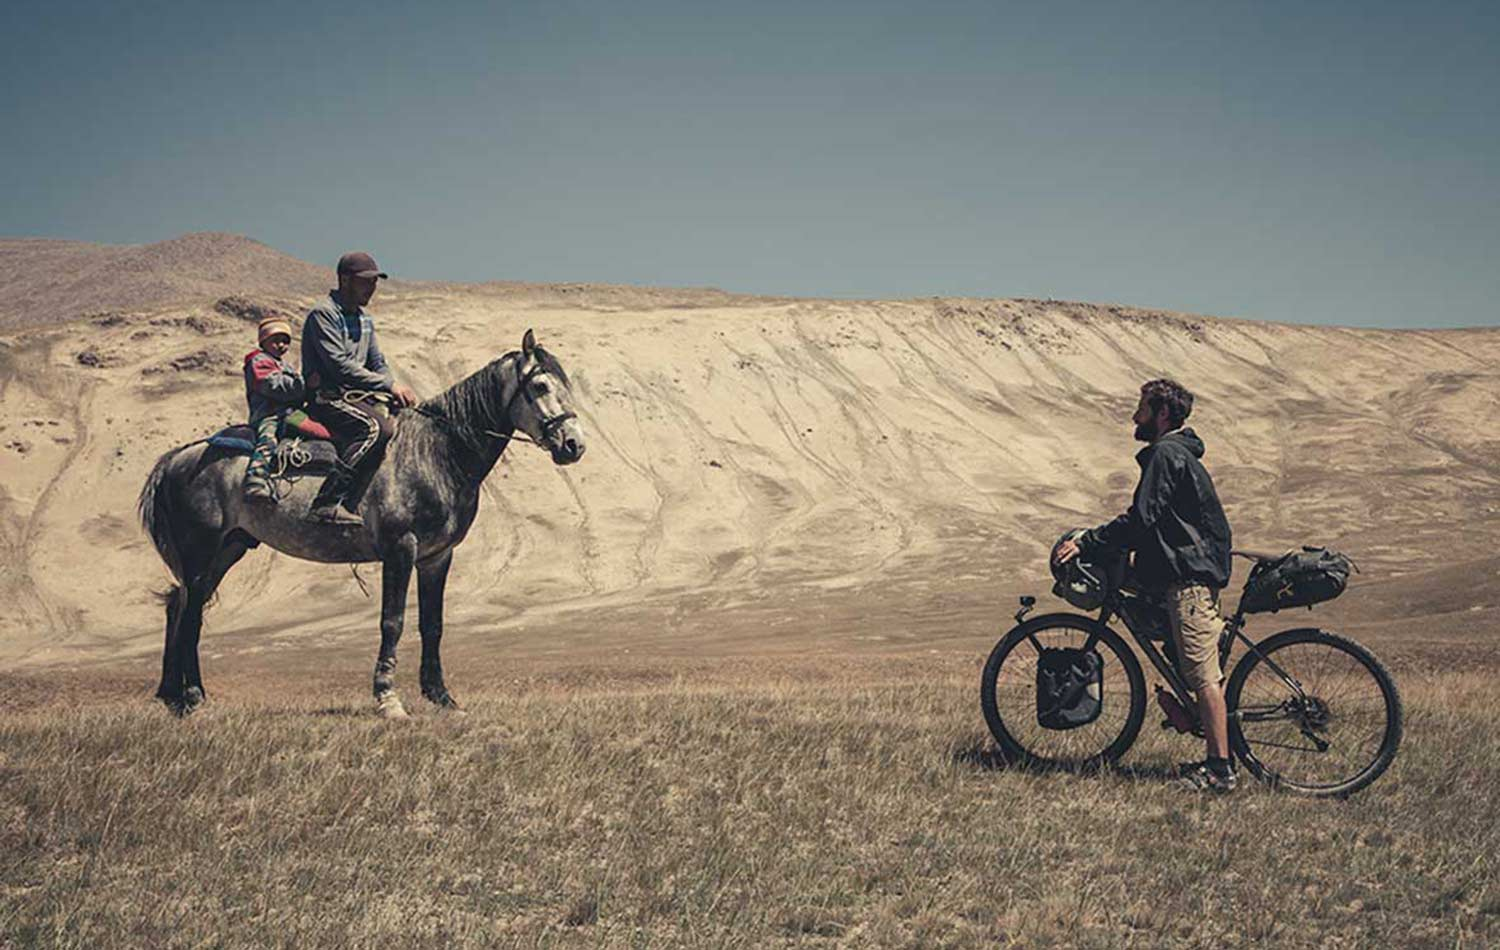 Apidura Ambassador's Marc Maurer meeting a horse rider on his journey Bikepacking in Kyrgyzstan